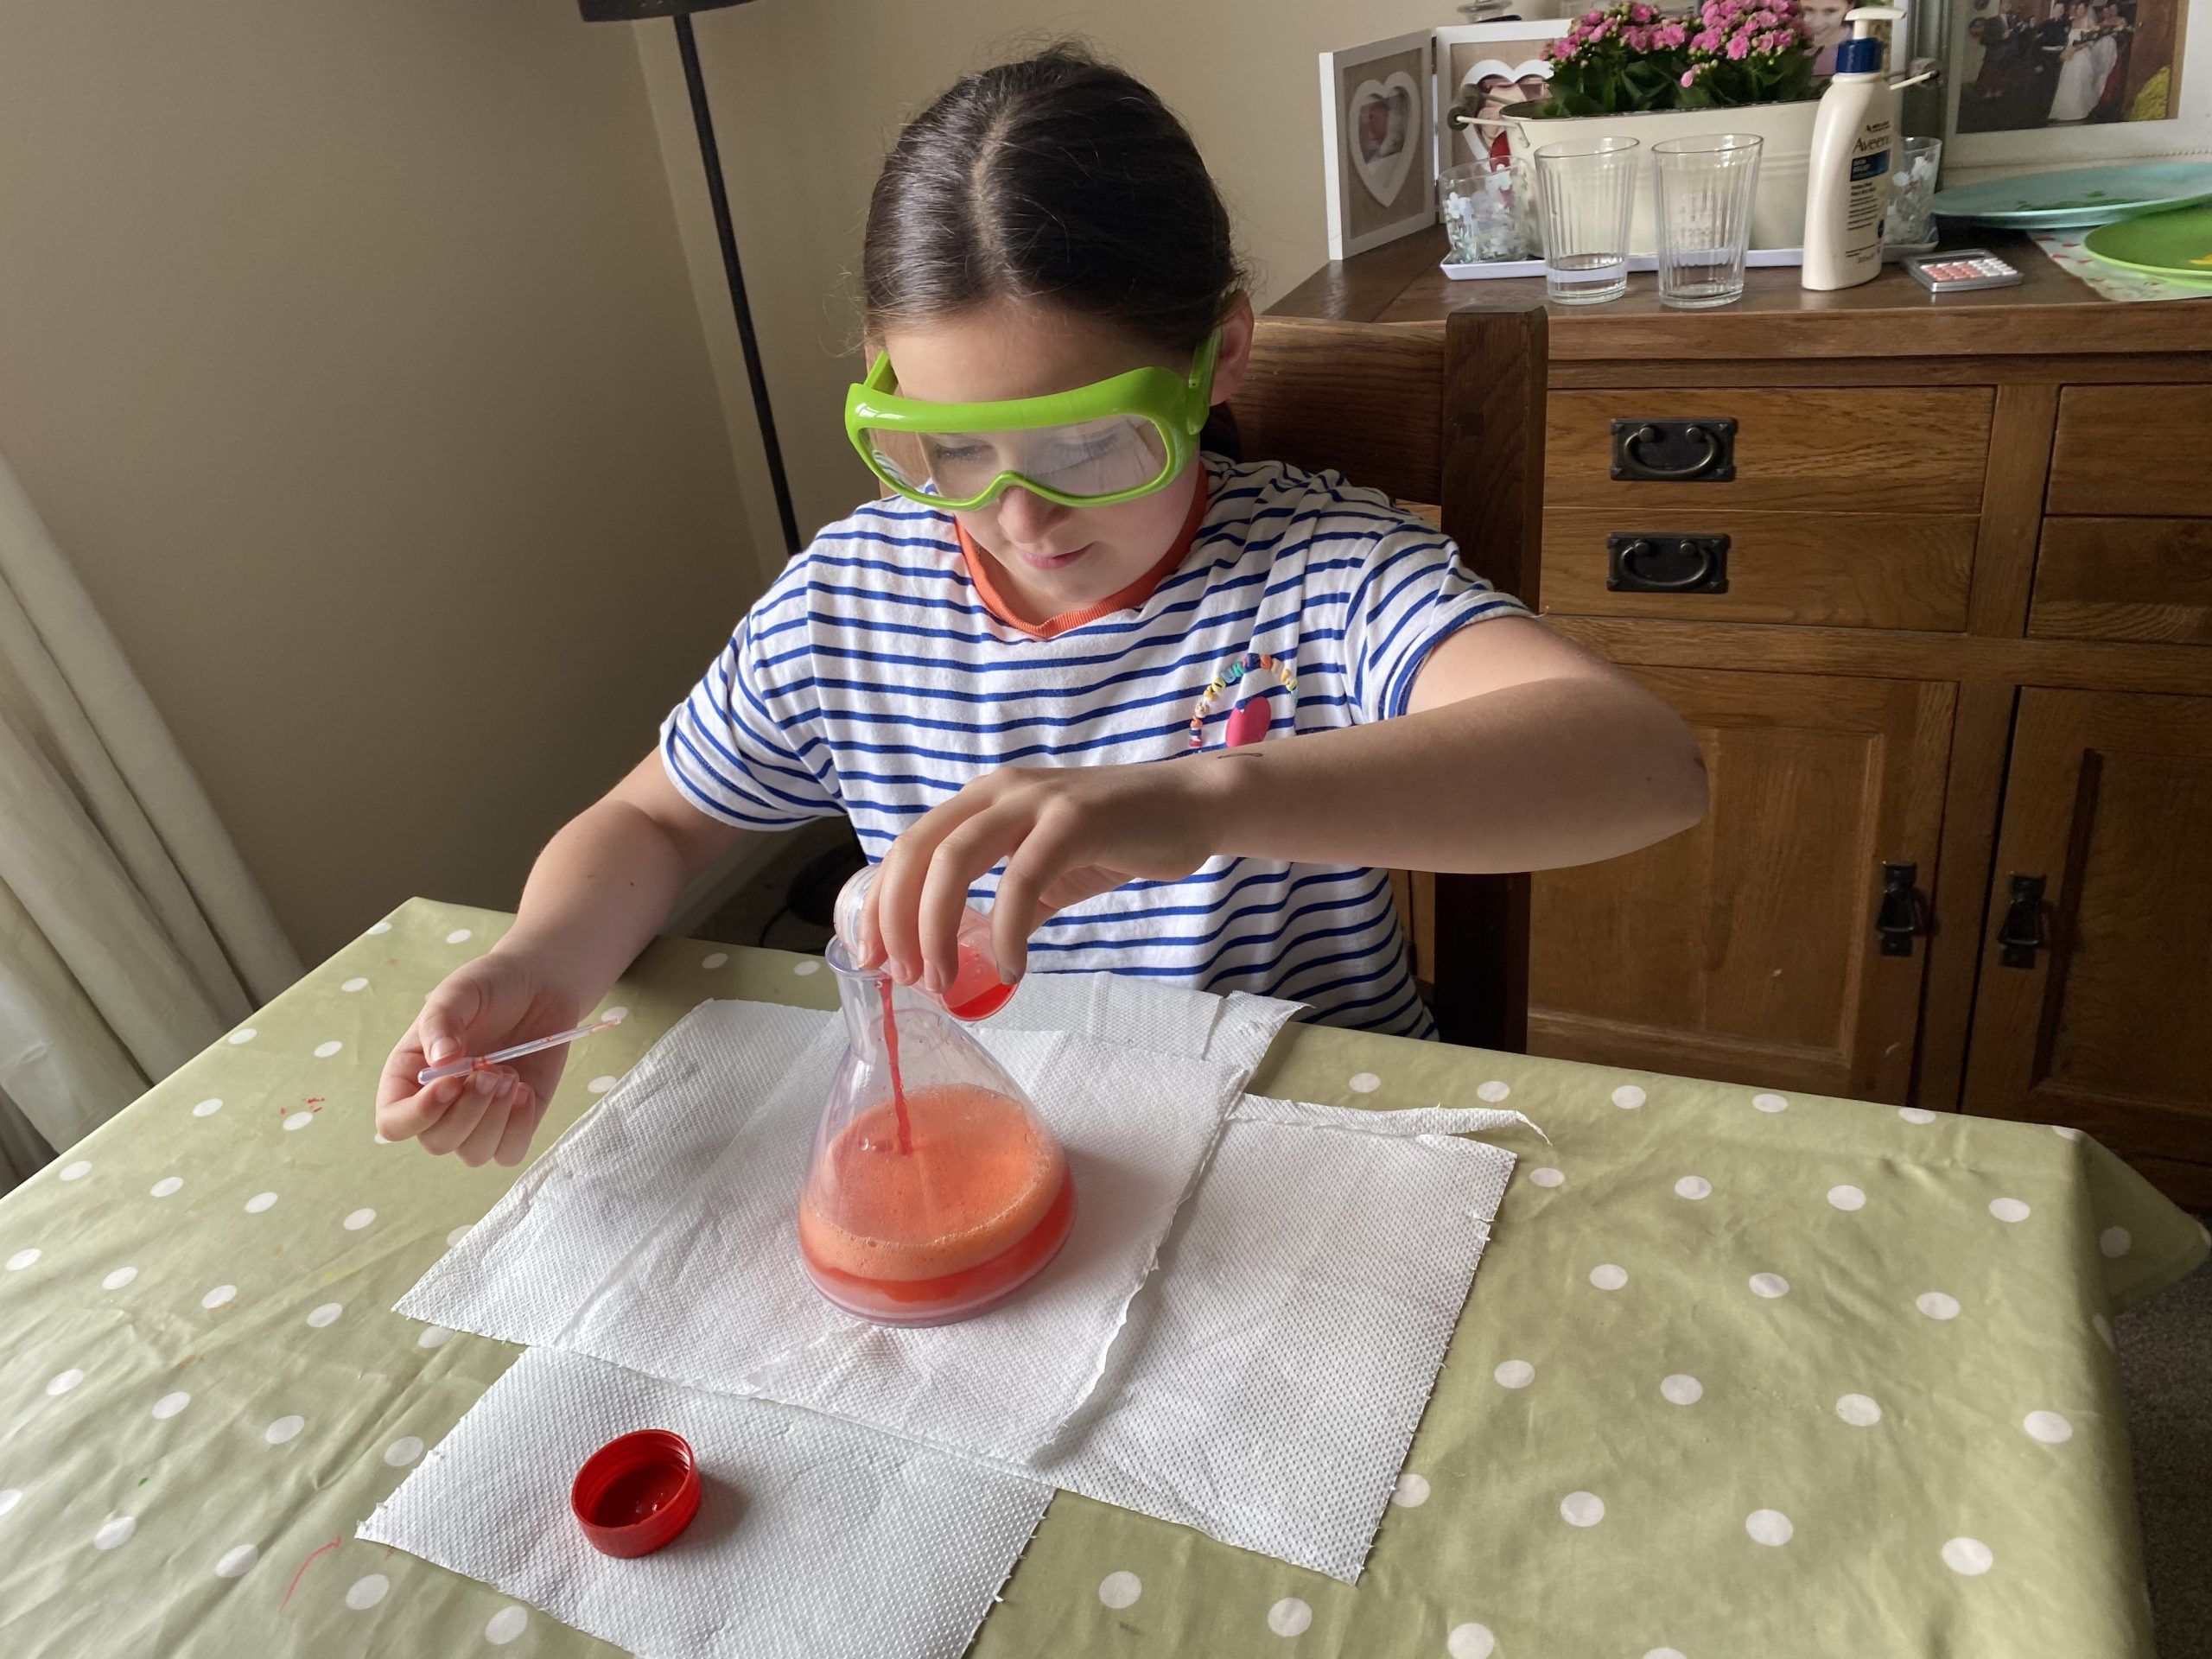 Lockdown science activities with a girl making a volcano